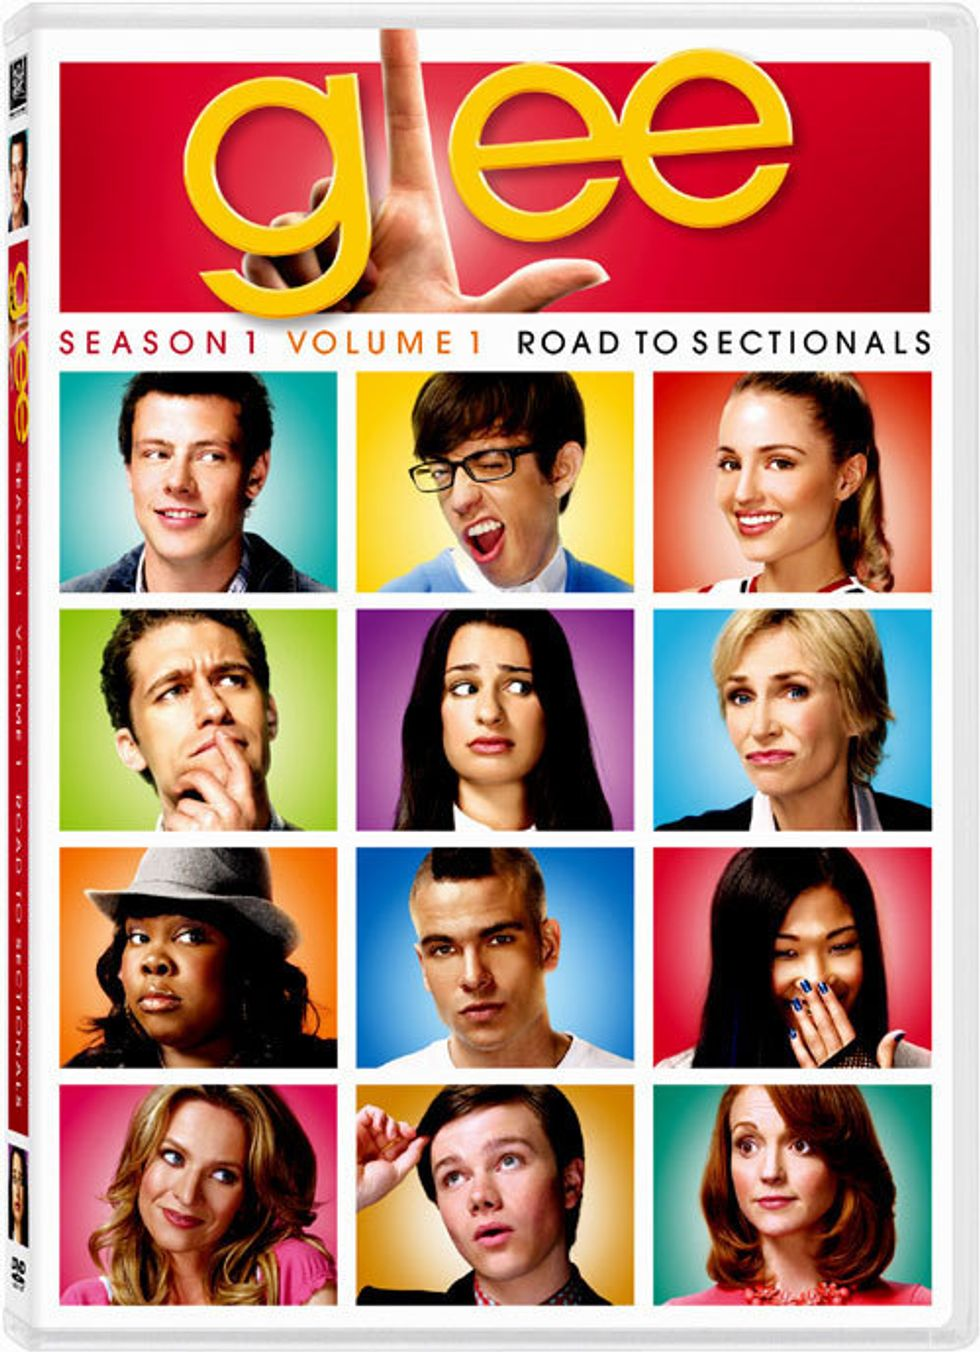 Don't Stop Believin': Glee Season 1, Volume 1 Is Out On DVD!